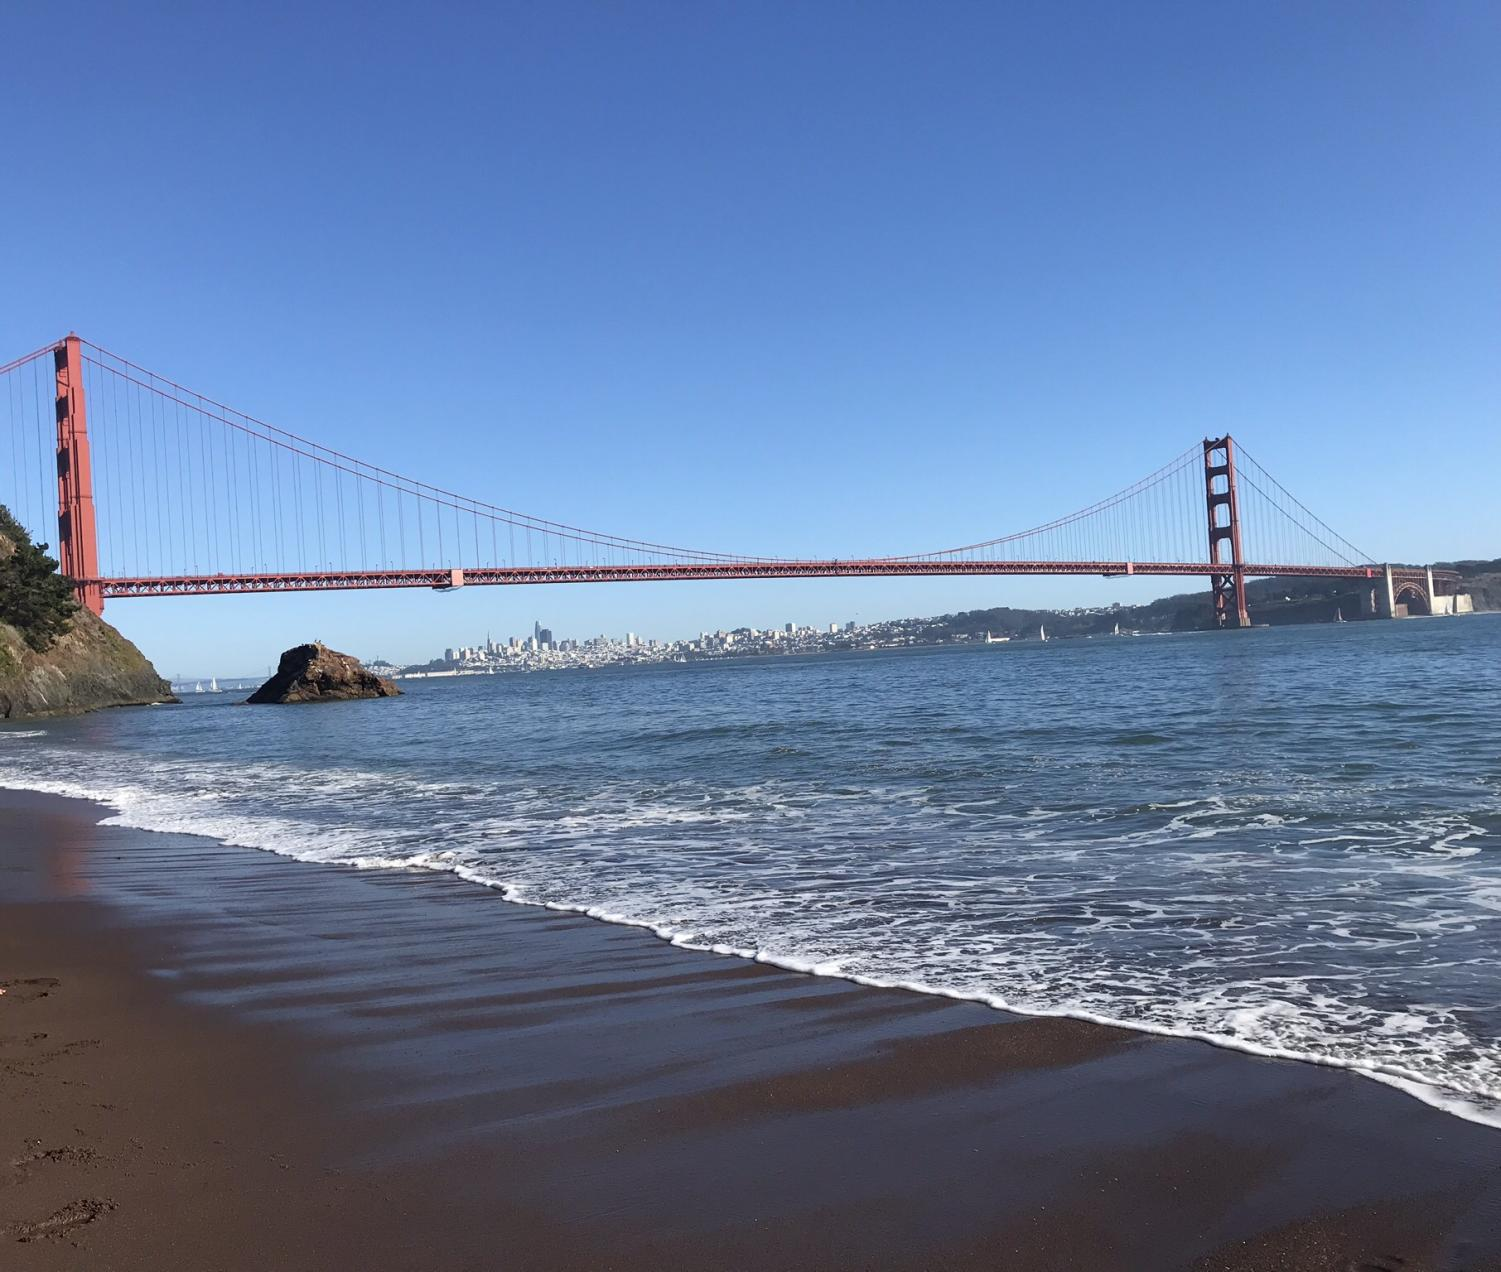 The Golden Gate Bridge is the second most popular place individuals commit suicide in the world according to The San Francisco Chronicle. With the City of San Francisco's new suicide net being put into place, it is possible that this statistic will change. (The Inquirer file photo).